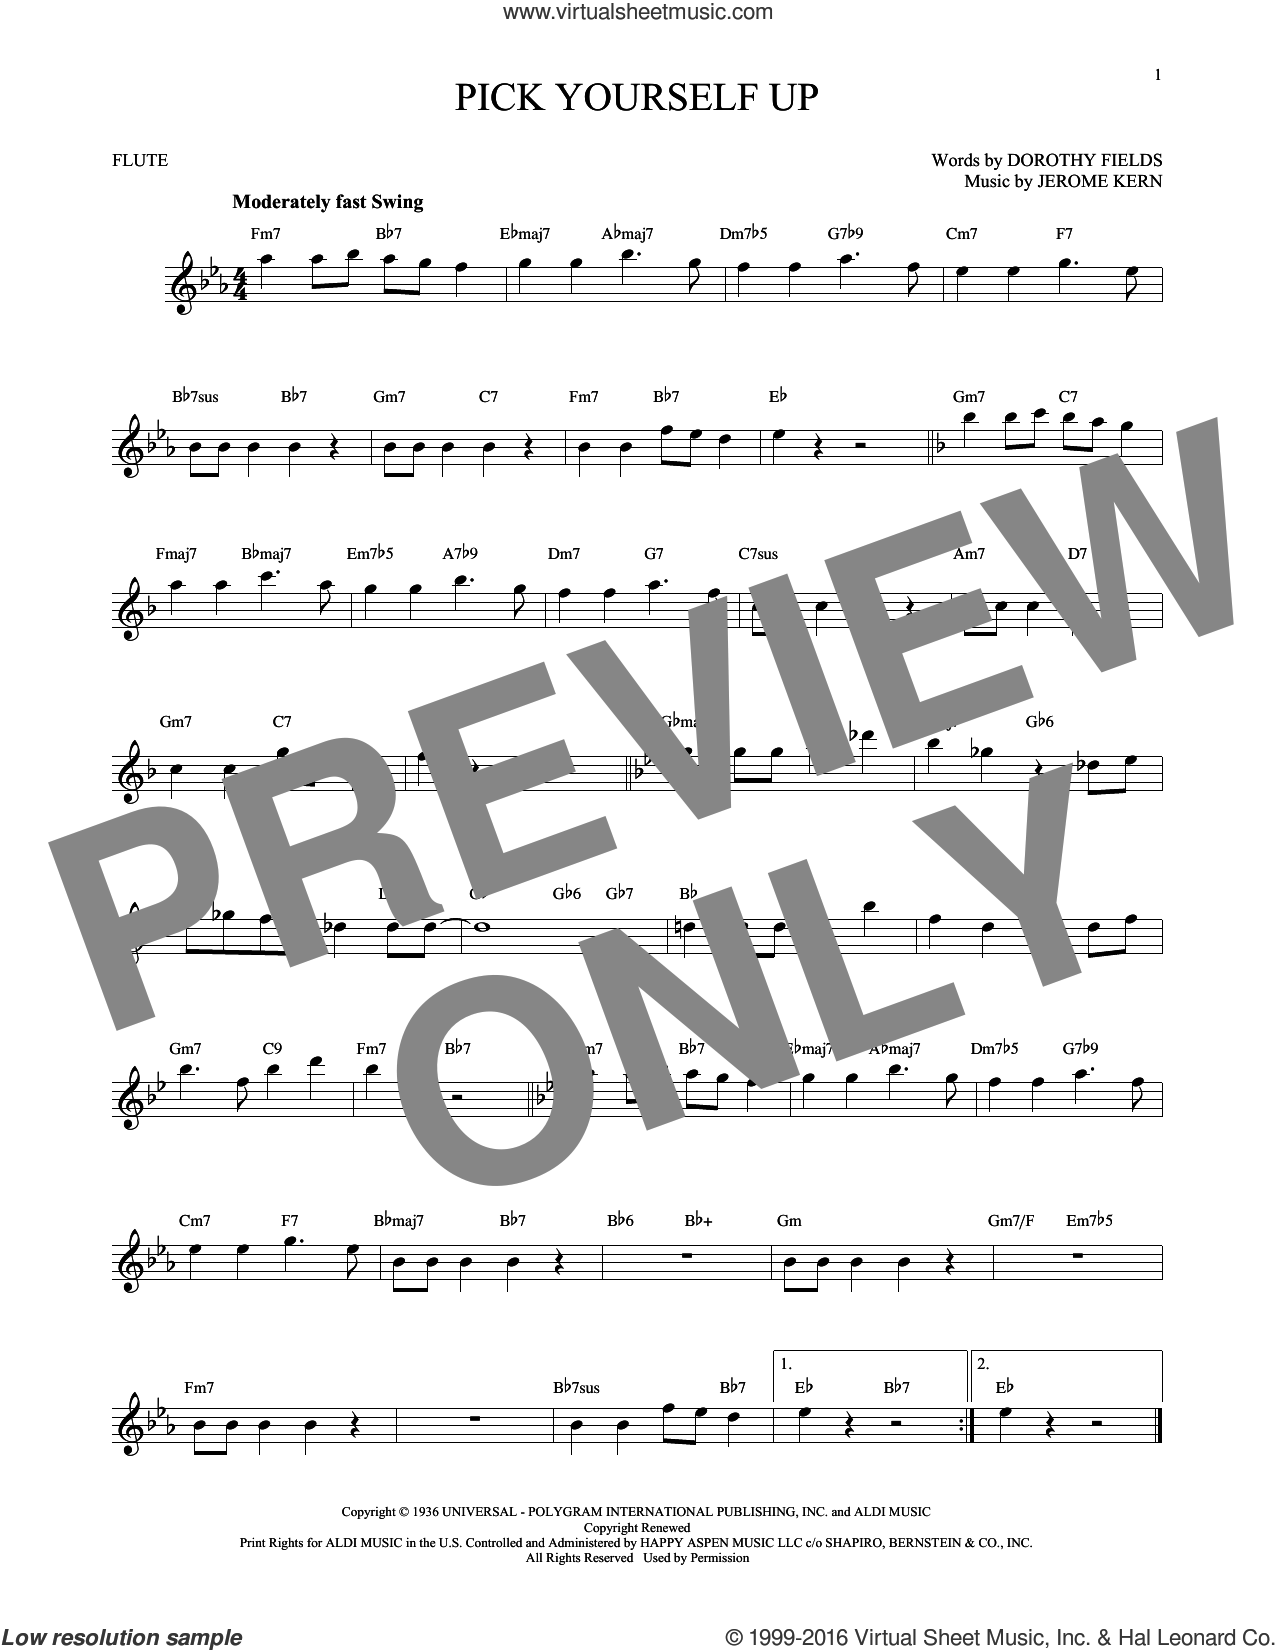 Pick Yourself Up sheet music for flute solo by Jerome Kern and Dorothy Fields, intermediate skill level